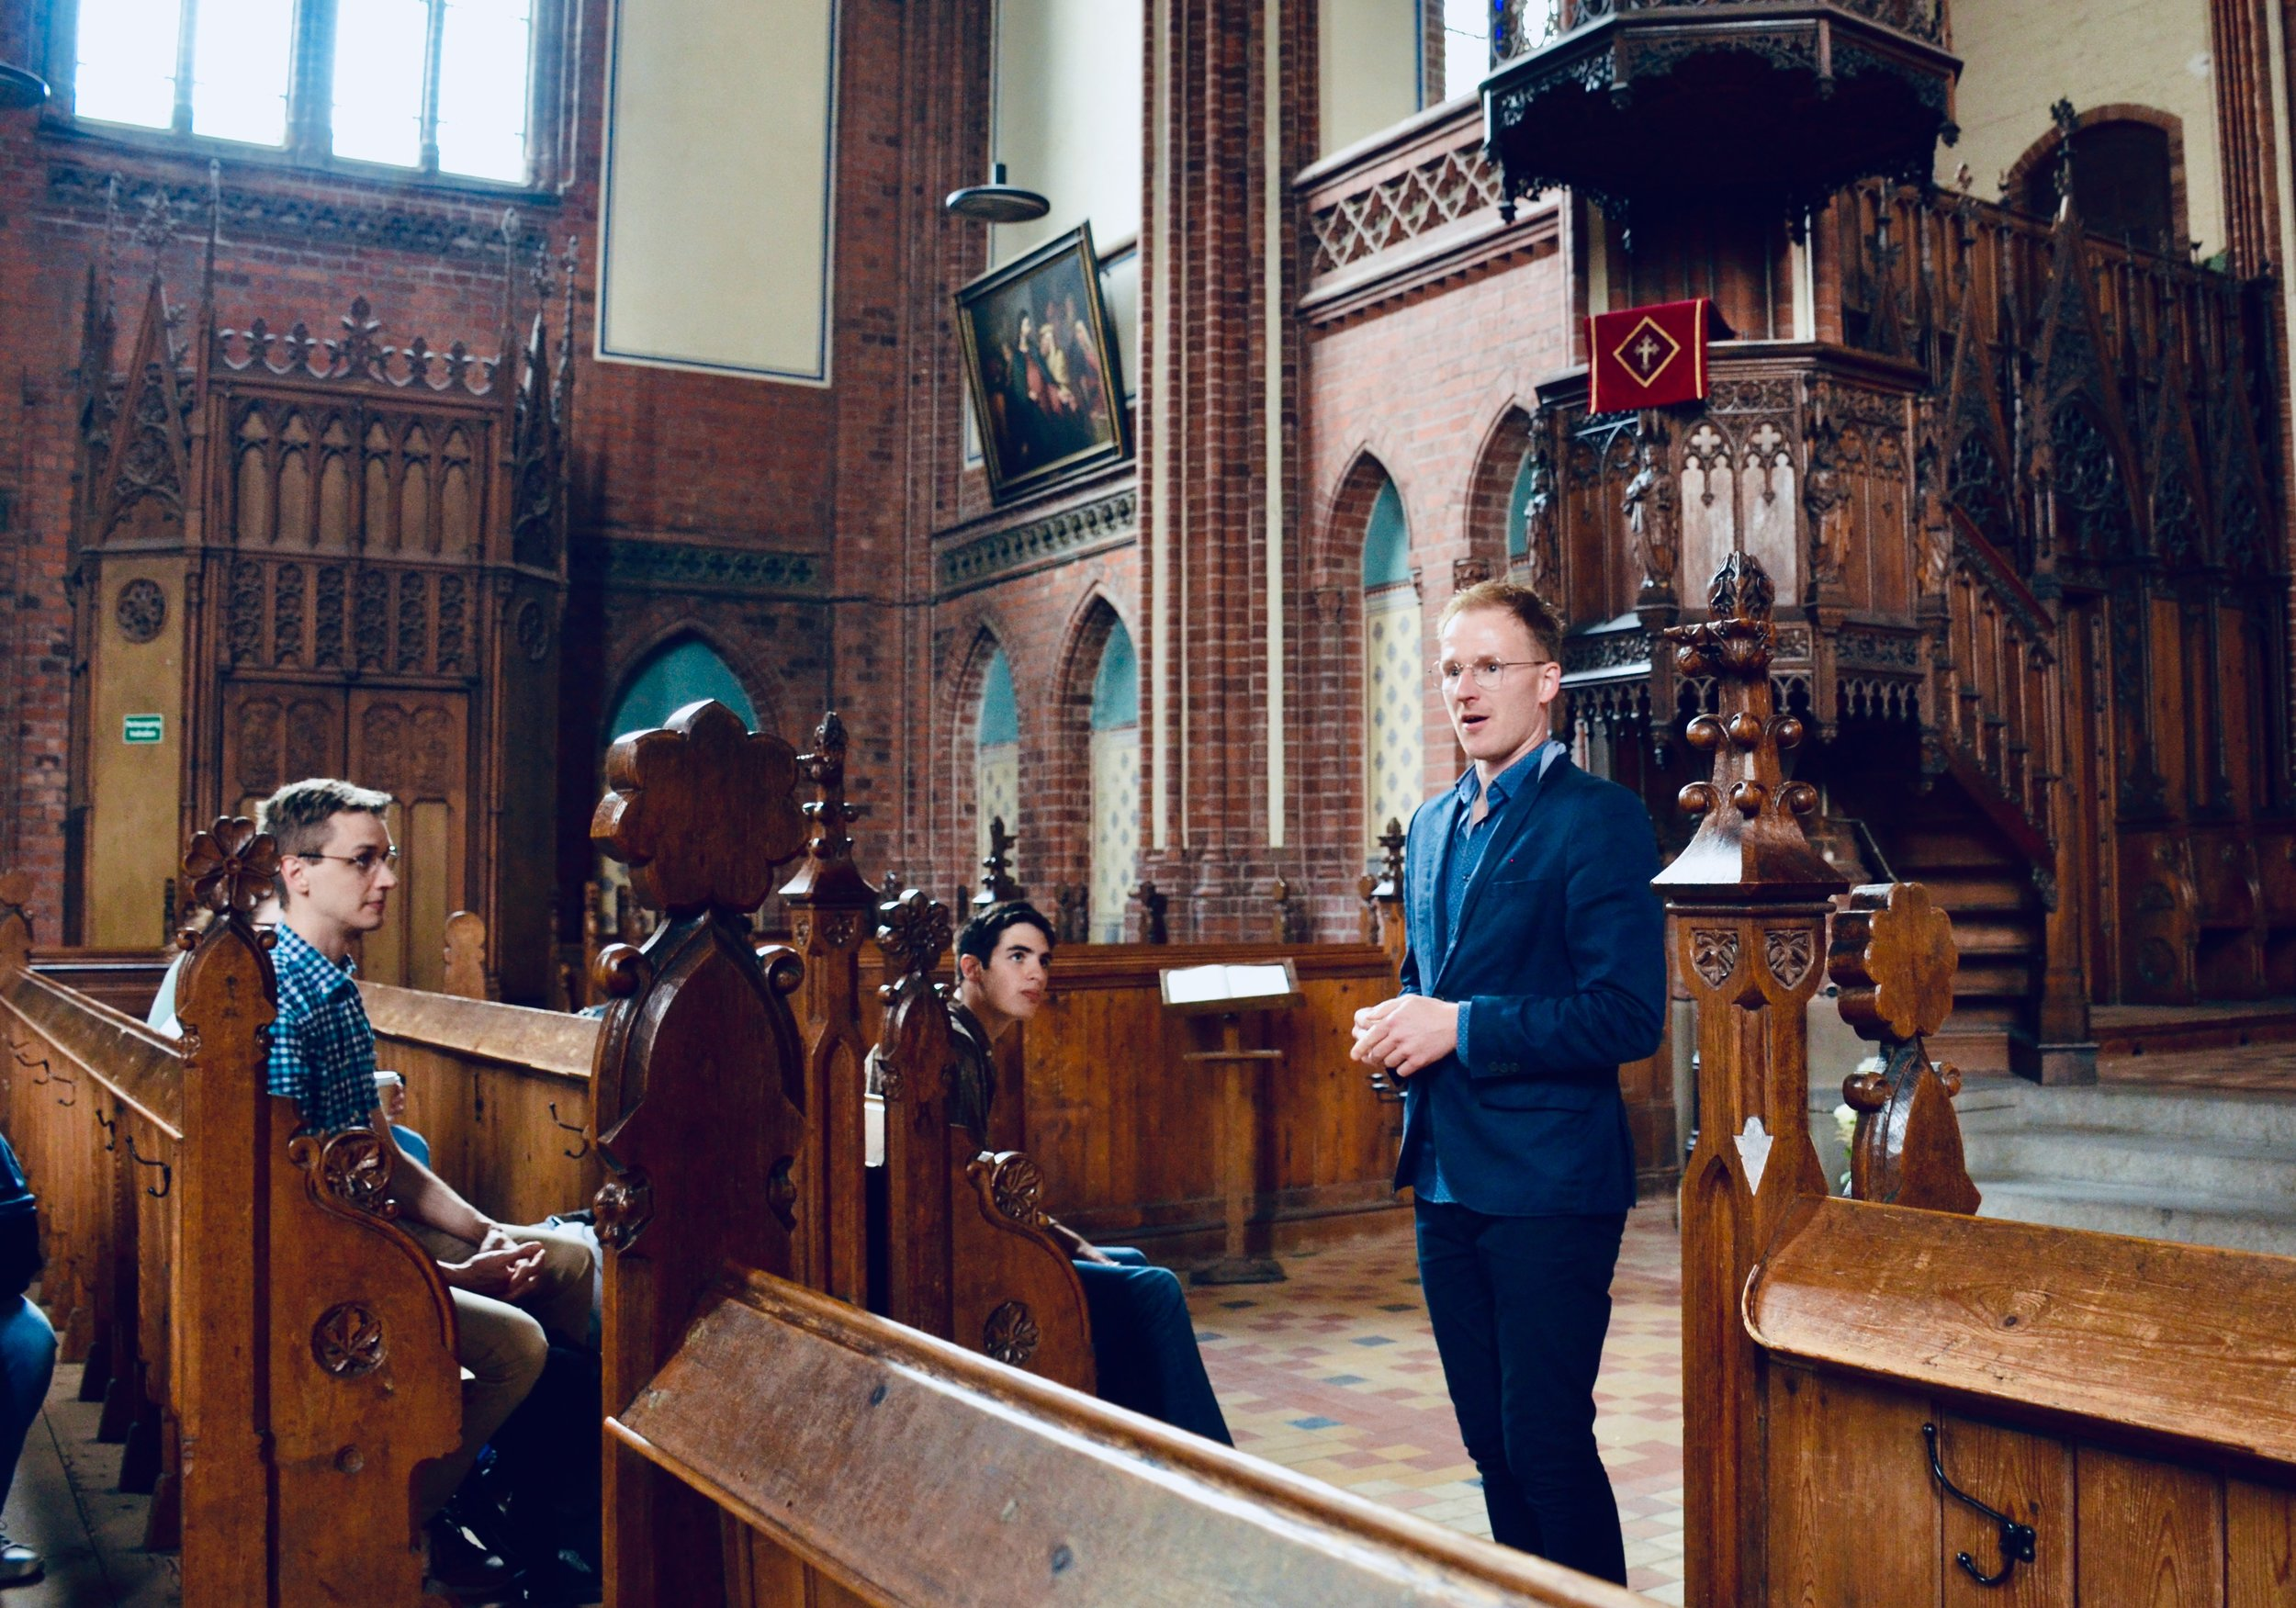 Paulskirche organist Christian Domke introduces us to the 1869 Friese organ.